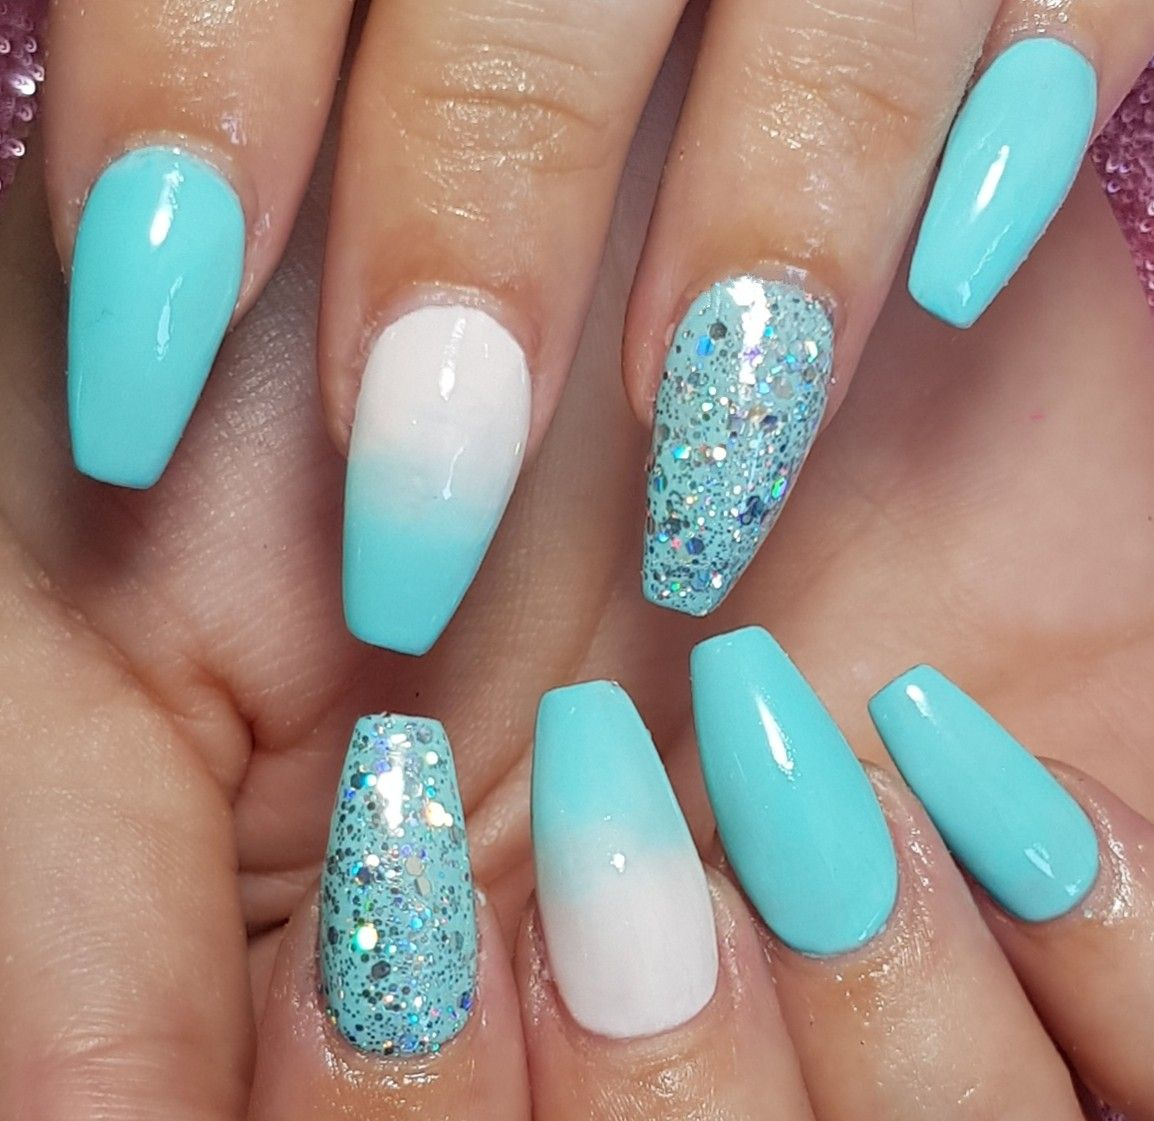 Aqua Blue And White Ombre With Glitter On Acrylic Sculpted Nails Aqua Nails Baby Blue Nails Turquoise Nails